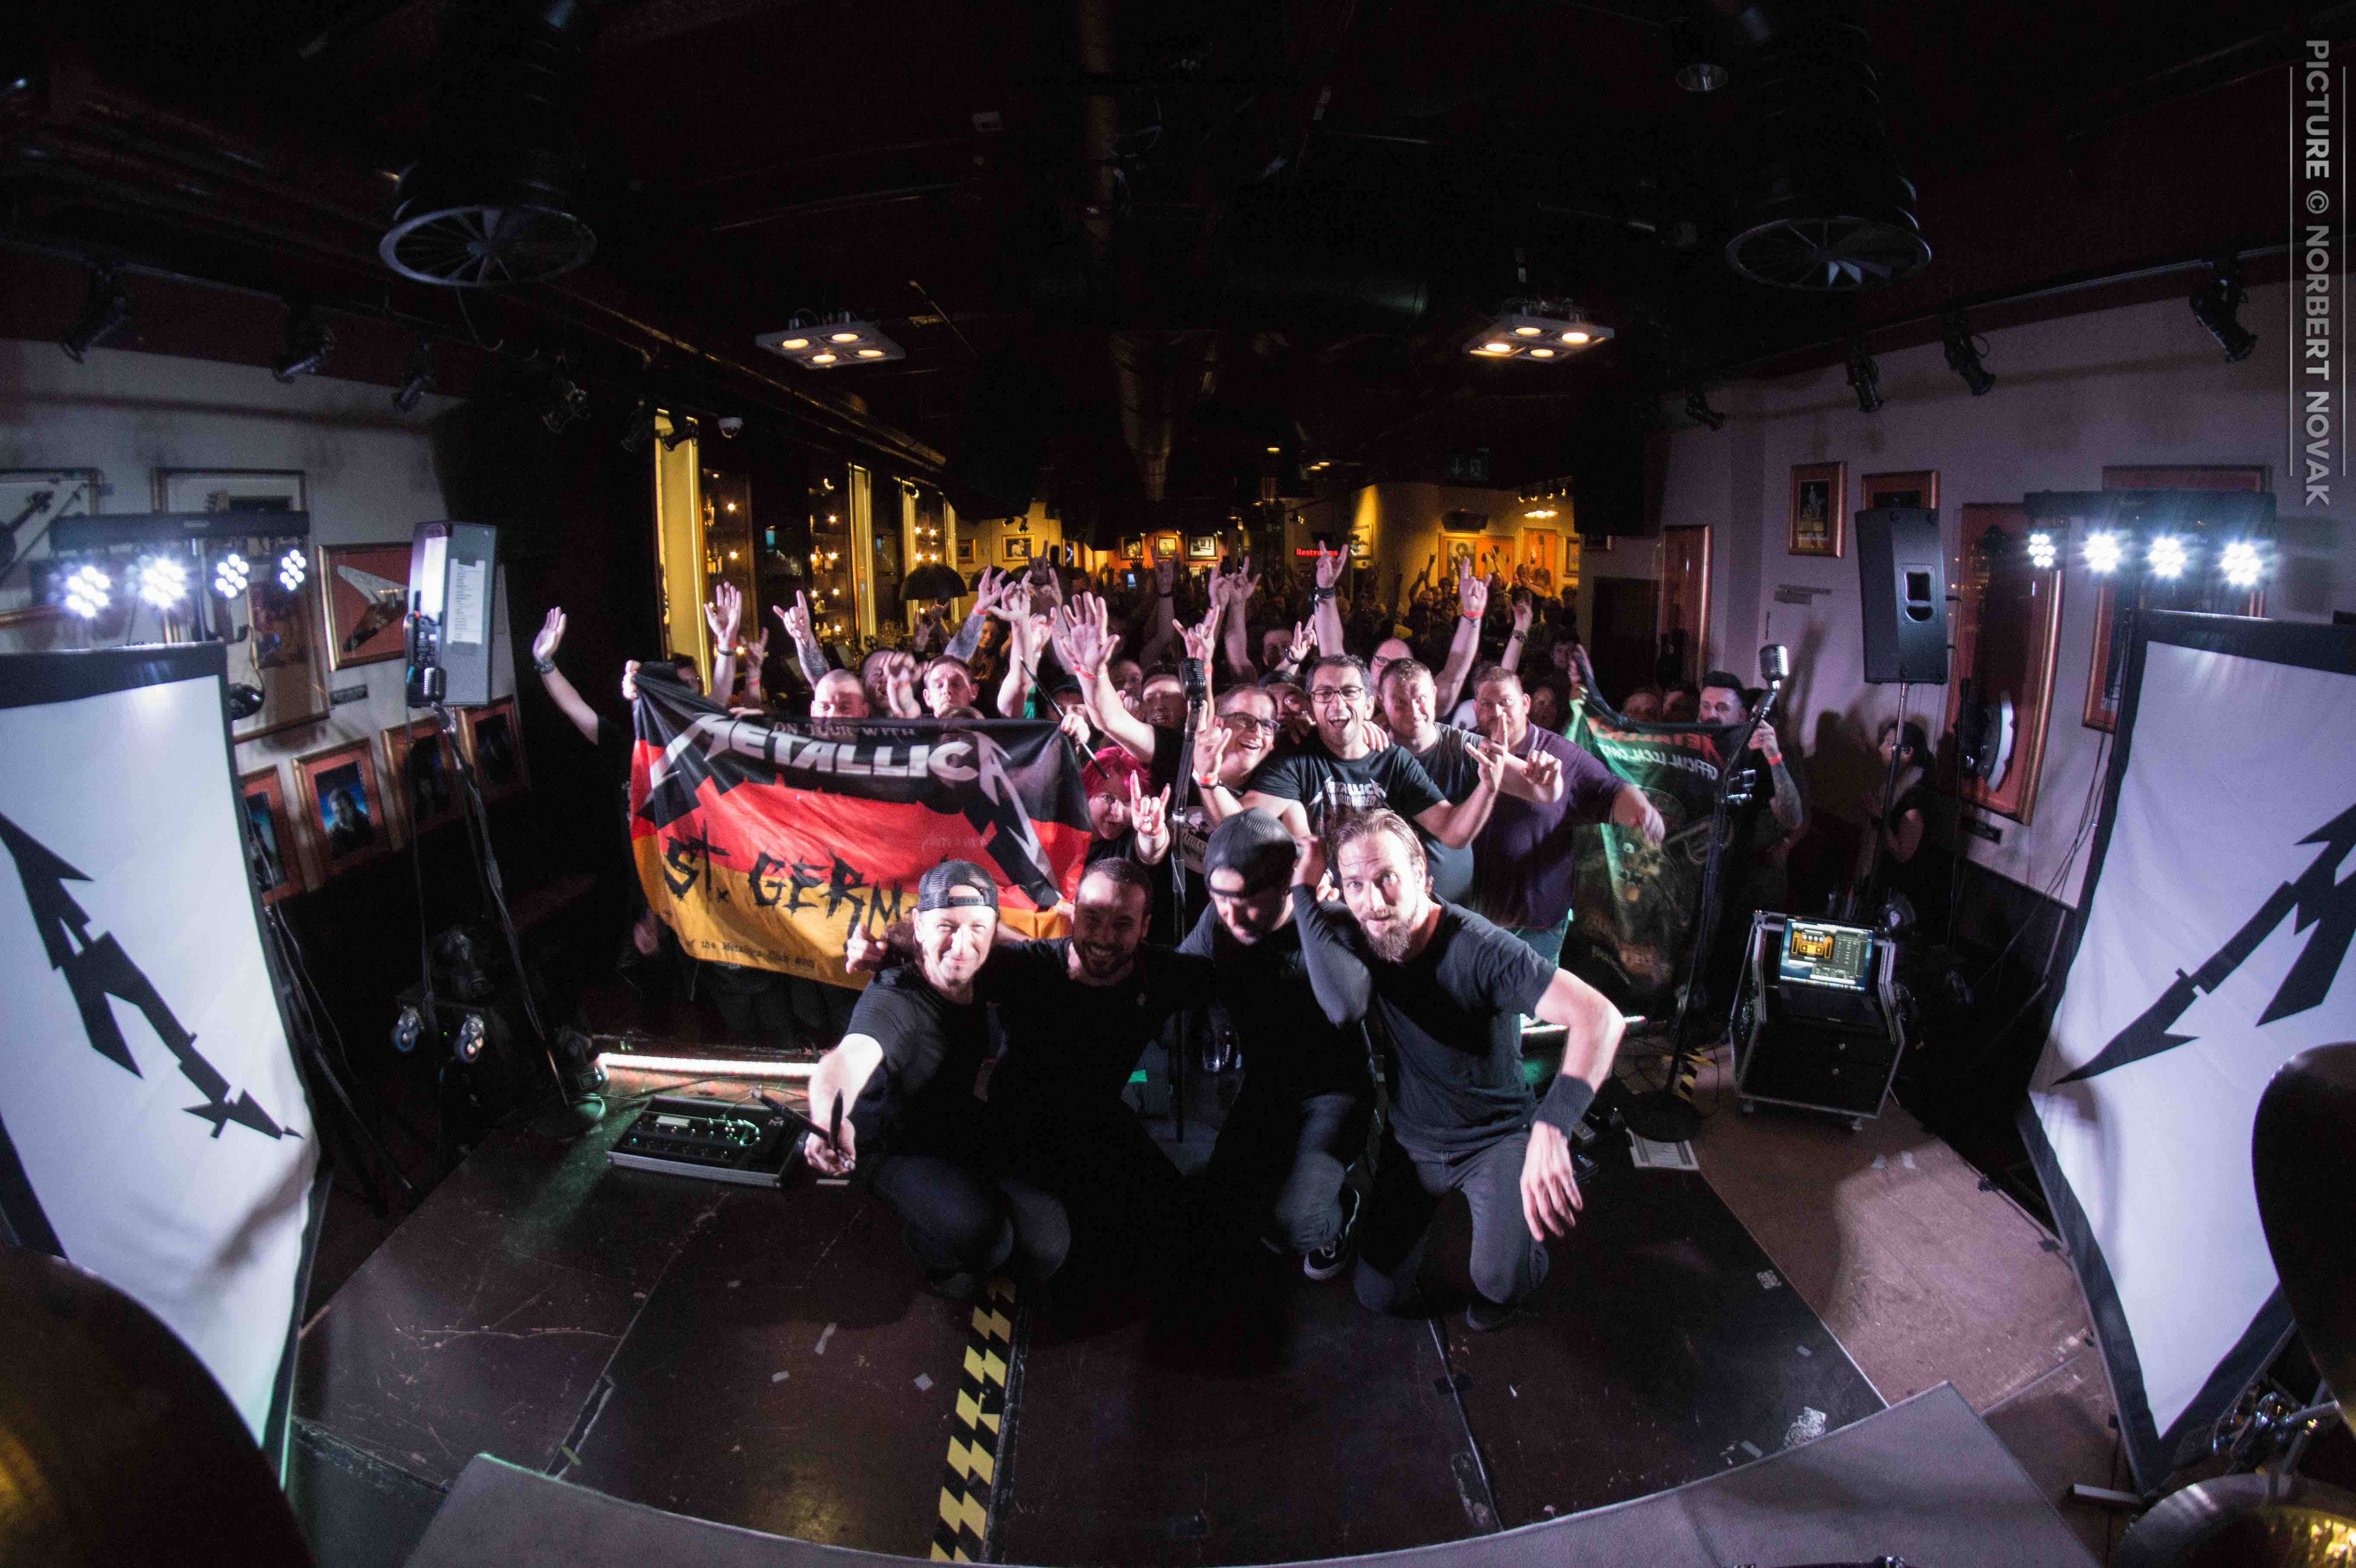 mytallica-2019-hard-rock-cafe-cologne-official-pre-party-fan-chapter-flag-thank-you